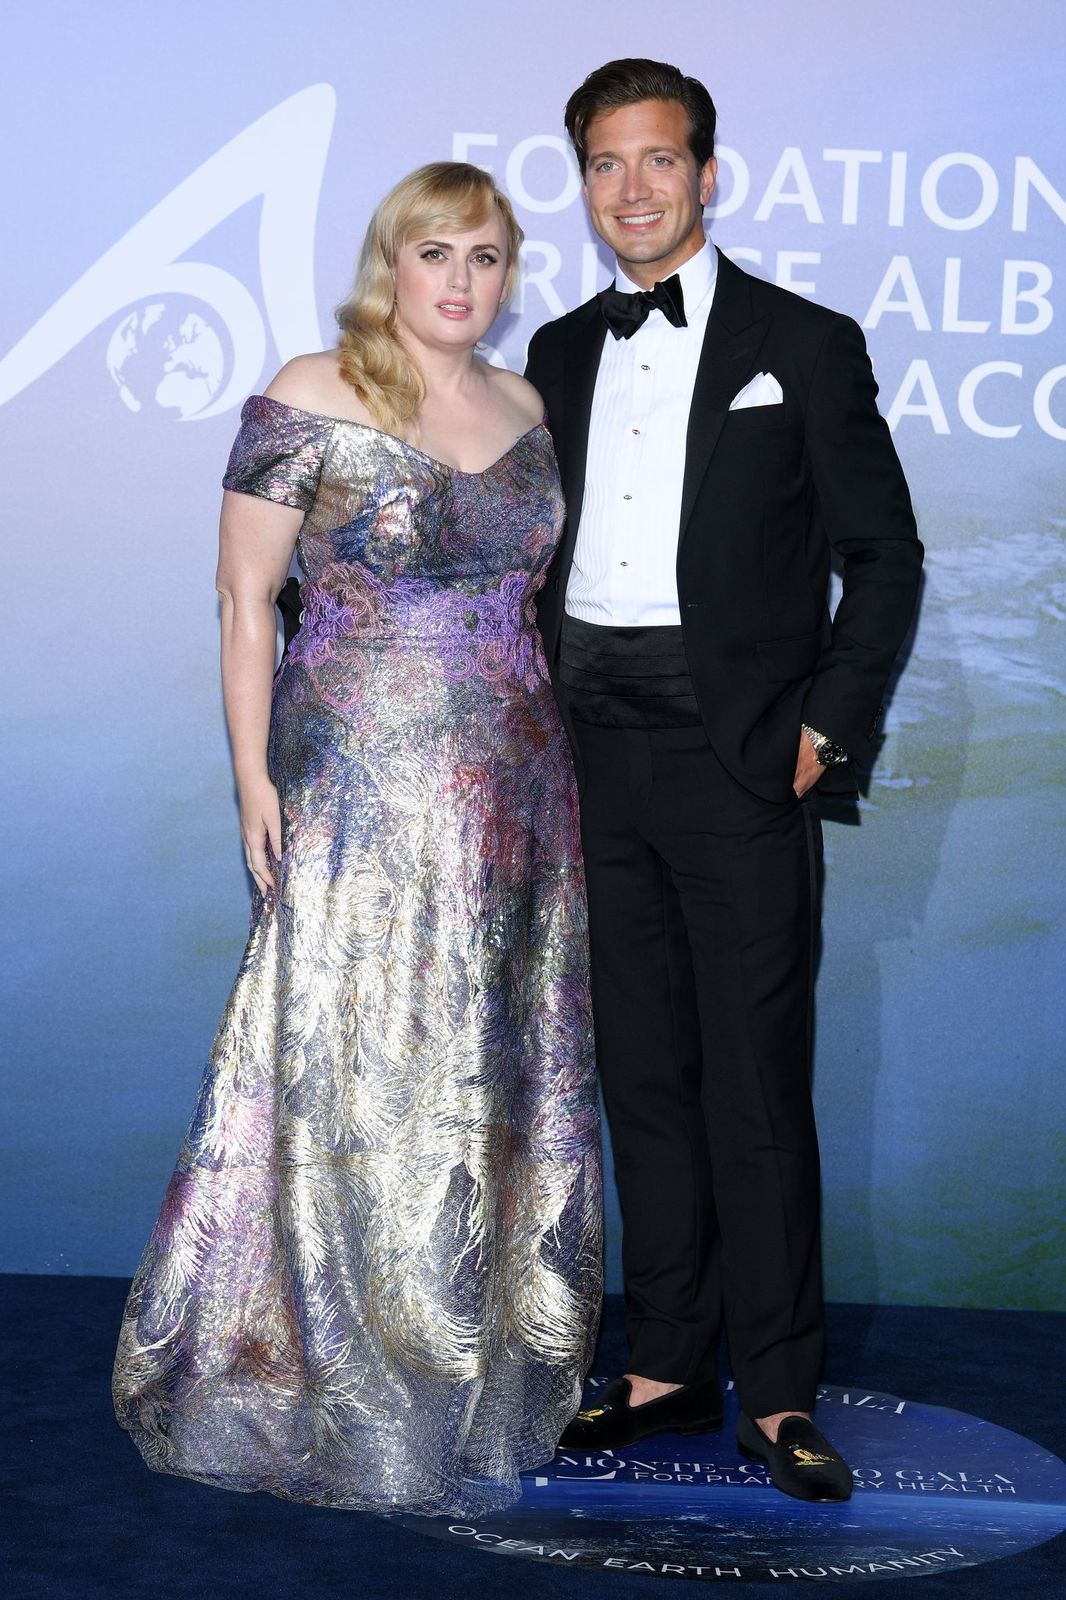 Rebel Wilson and Jacob Busch atthe Monte-Carlo Gala For Planetary Health event on September 24, 2020, in Monaco | Photo:Pascal Le Segretain/Getty Images